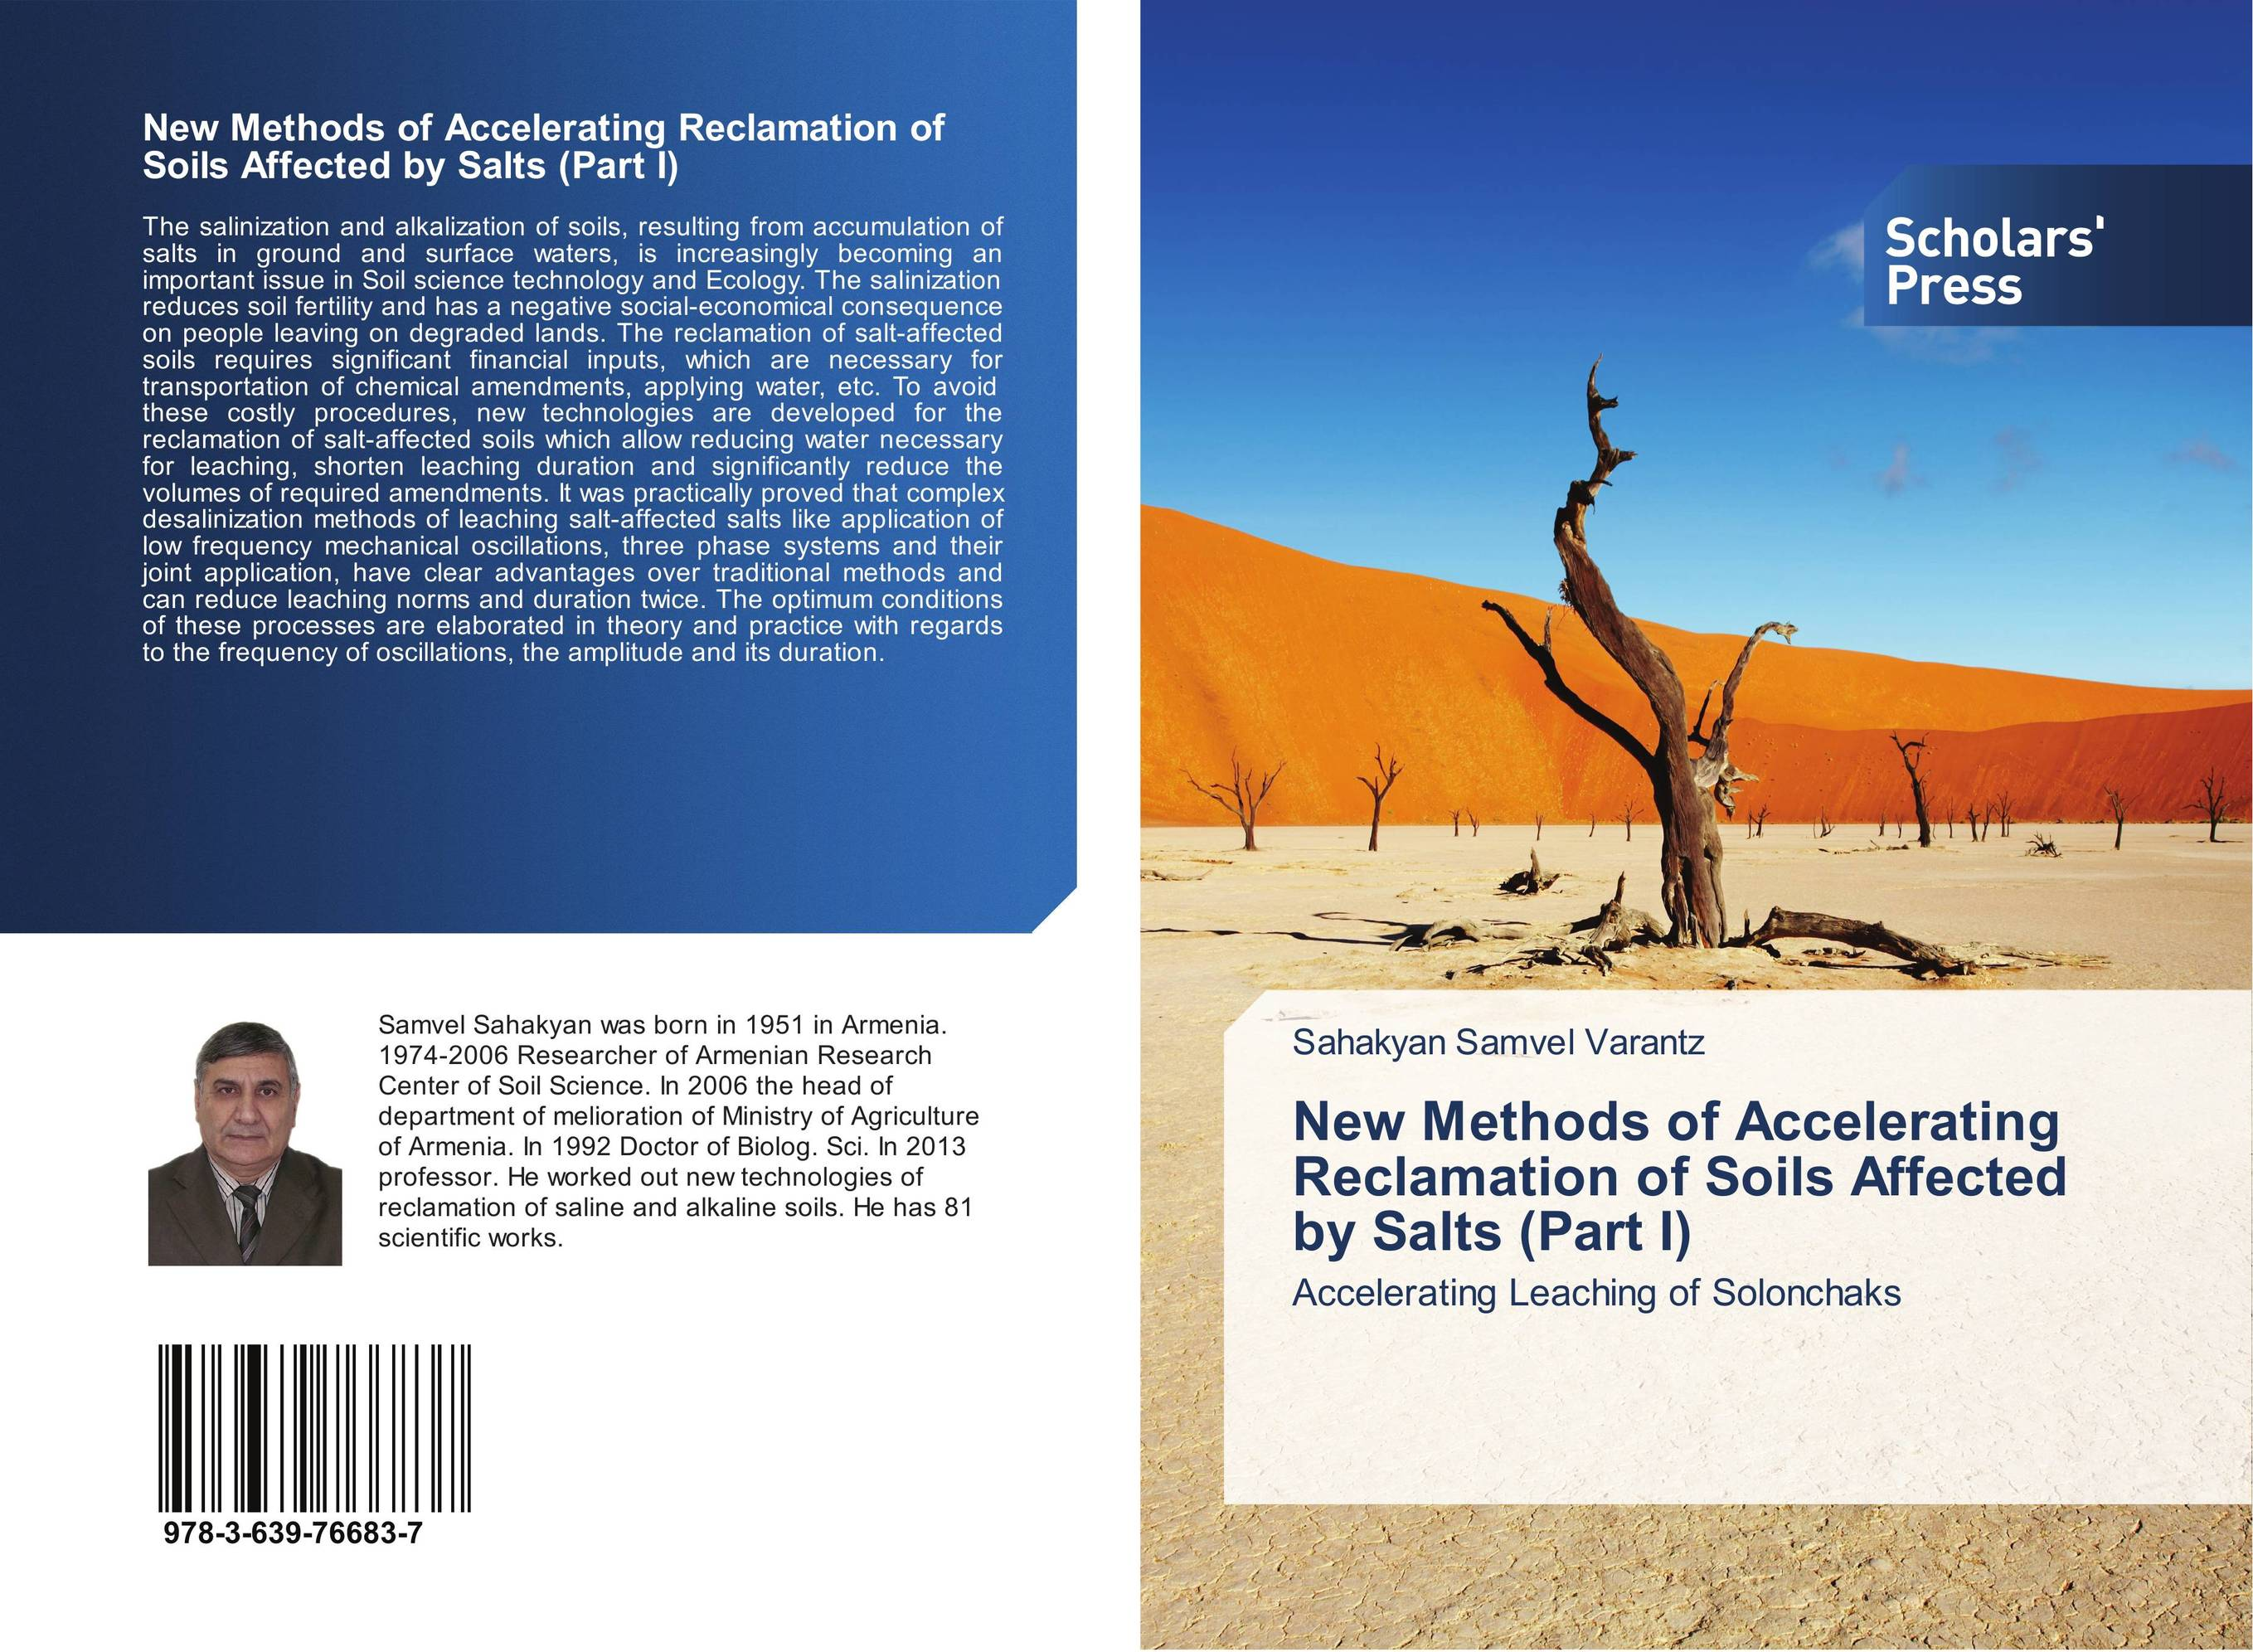 New Methods of Accelerating Reclamation of Soils Affected by Salts (Part I) belousov a security features of banknotes and other documents methods of authentication manual денежные билеты бланки ценных бумаг и документов